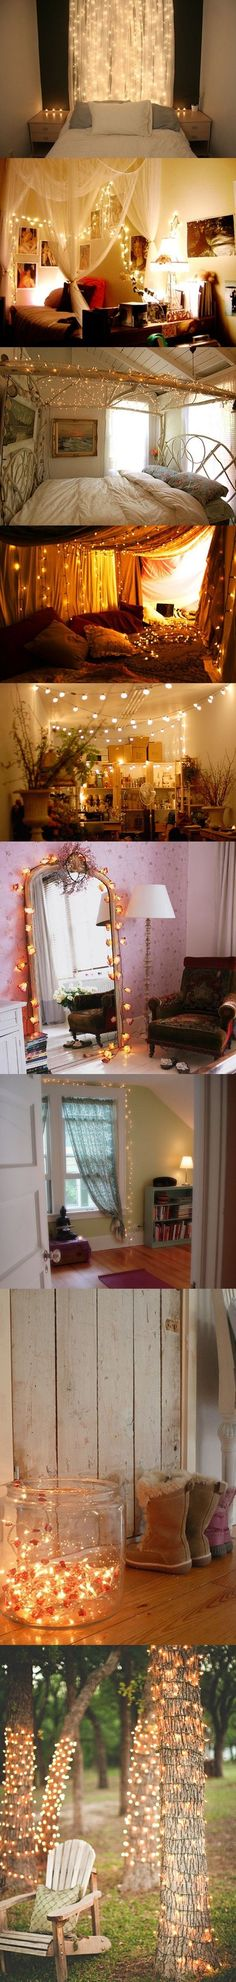 decorative-lights-15.jpg (554×4653)